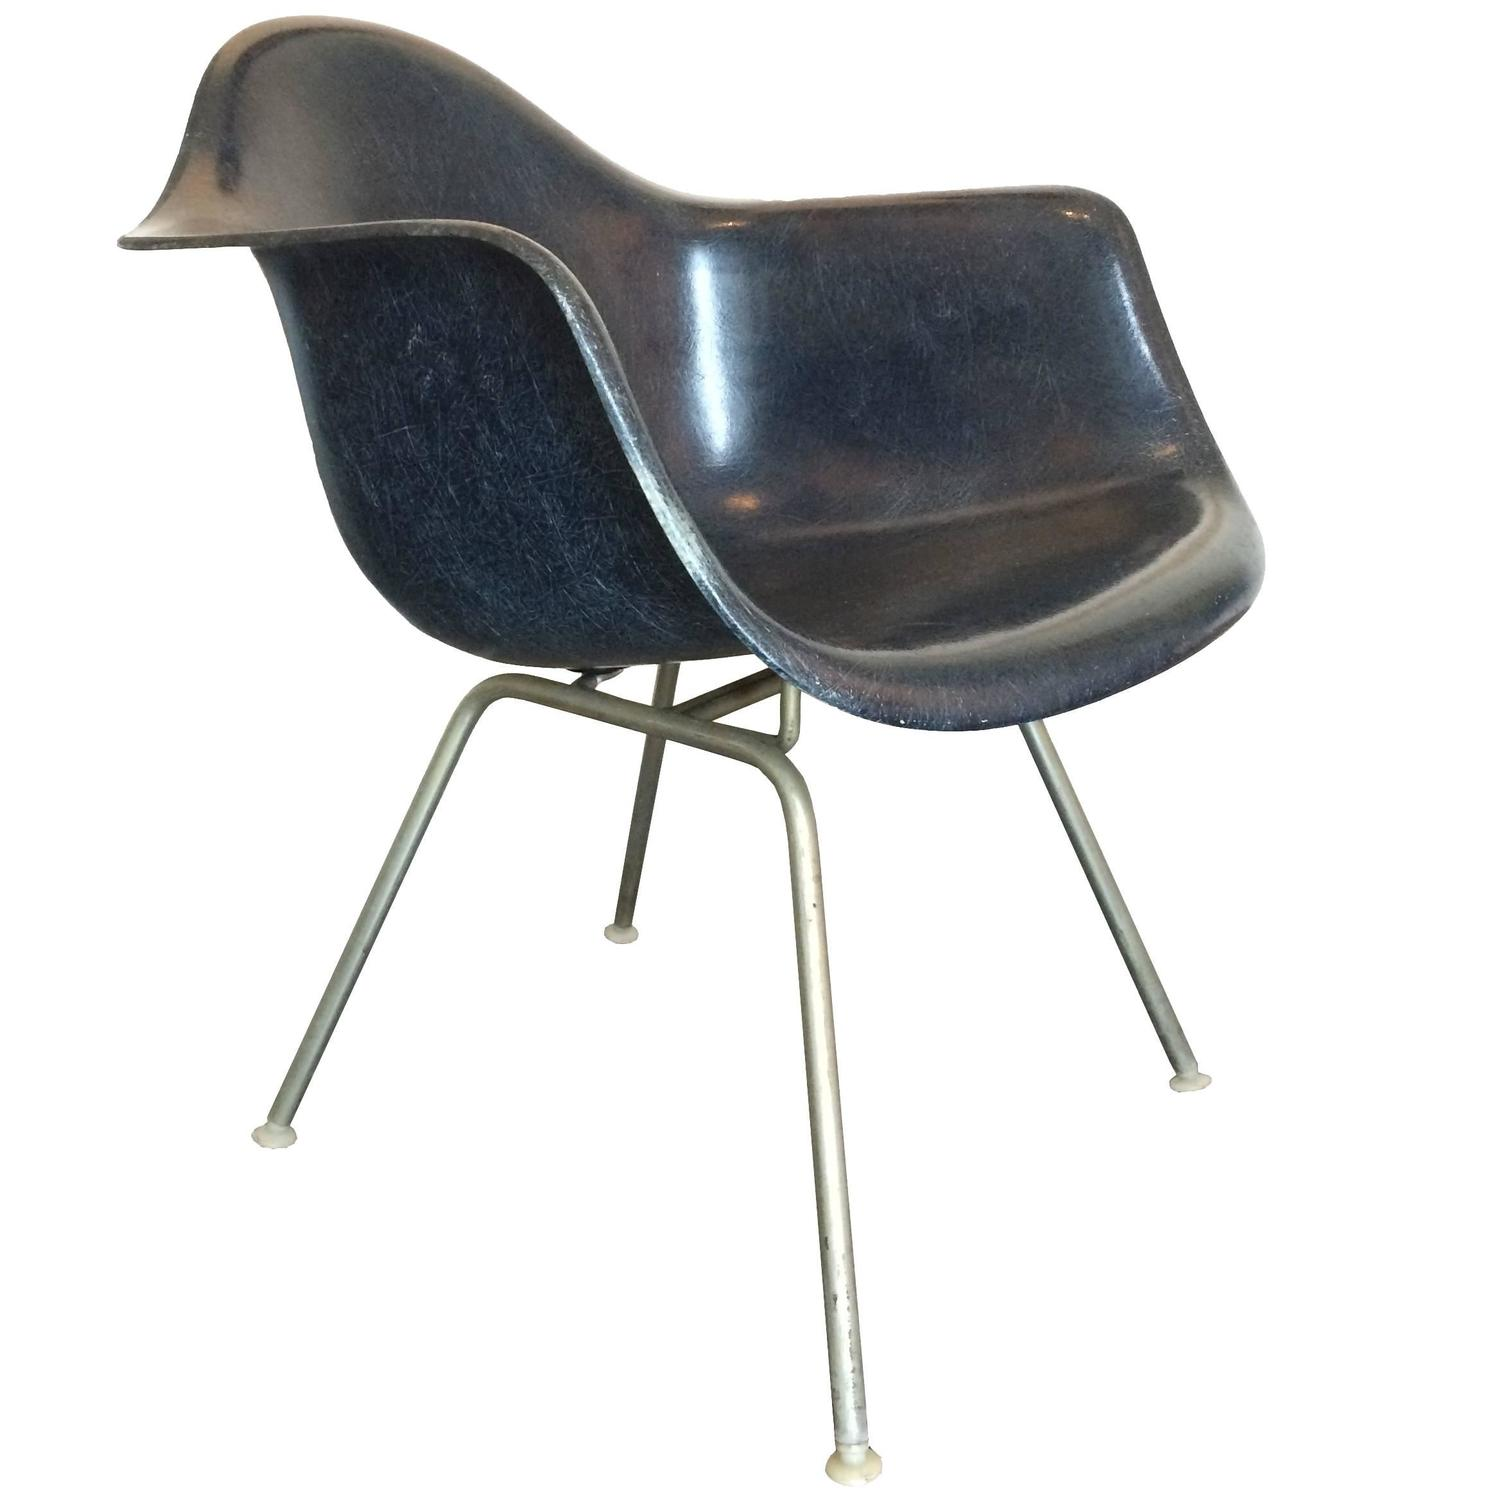 mid century modern charles eames herman miller fiberglass lounge chair in navy for sale at 1stdibs. Black Bedroom Furniture Sets. Home Design Ideas